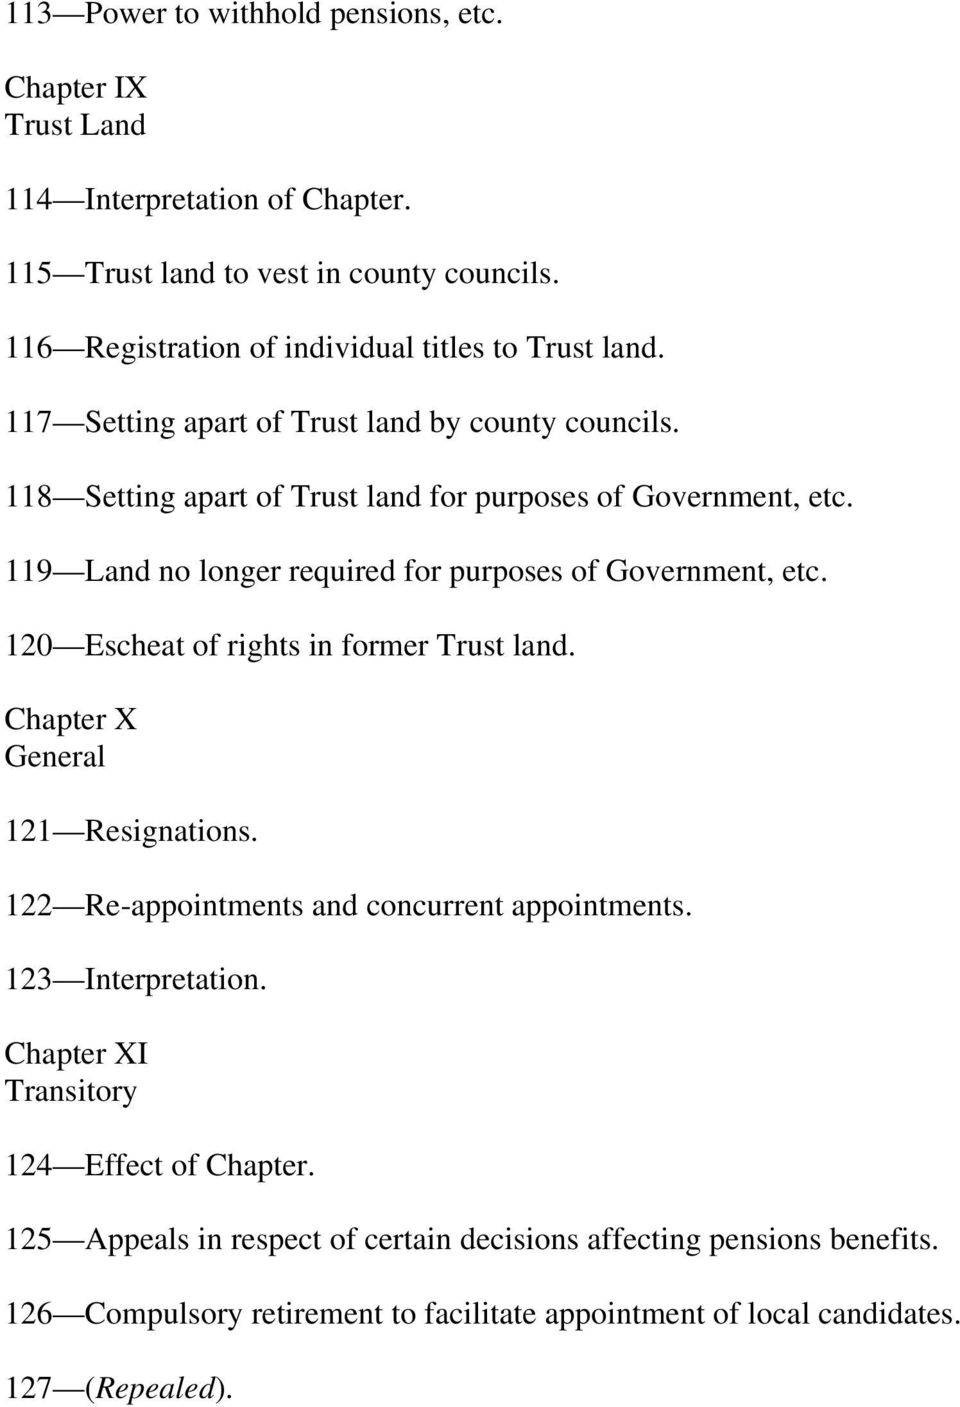 119 Land no longer required for purposes of Government, etc. 120 Escheat of rights in former Trust land. Chapter X General 121 Resignations.